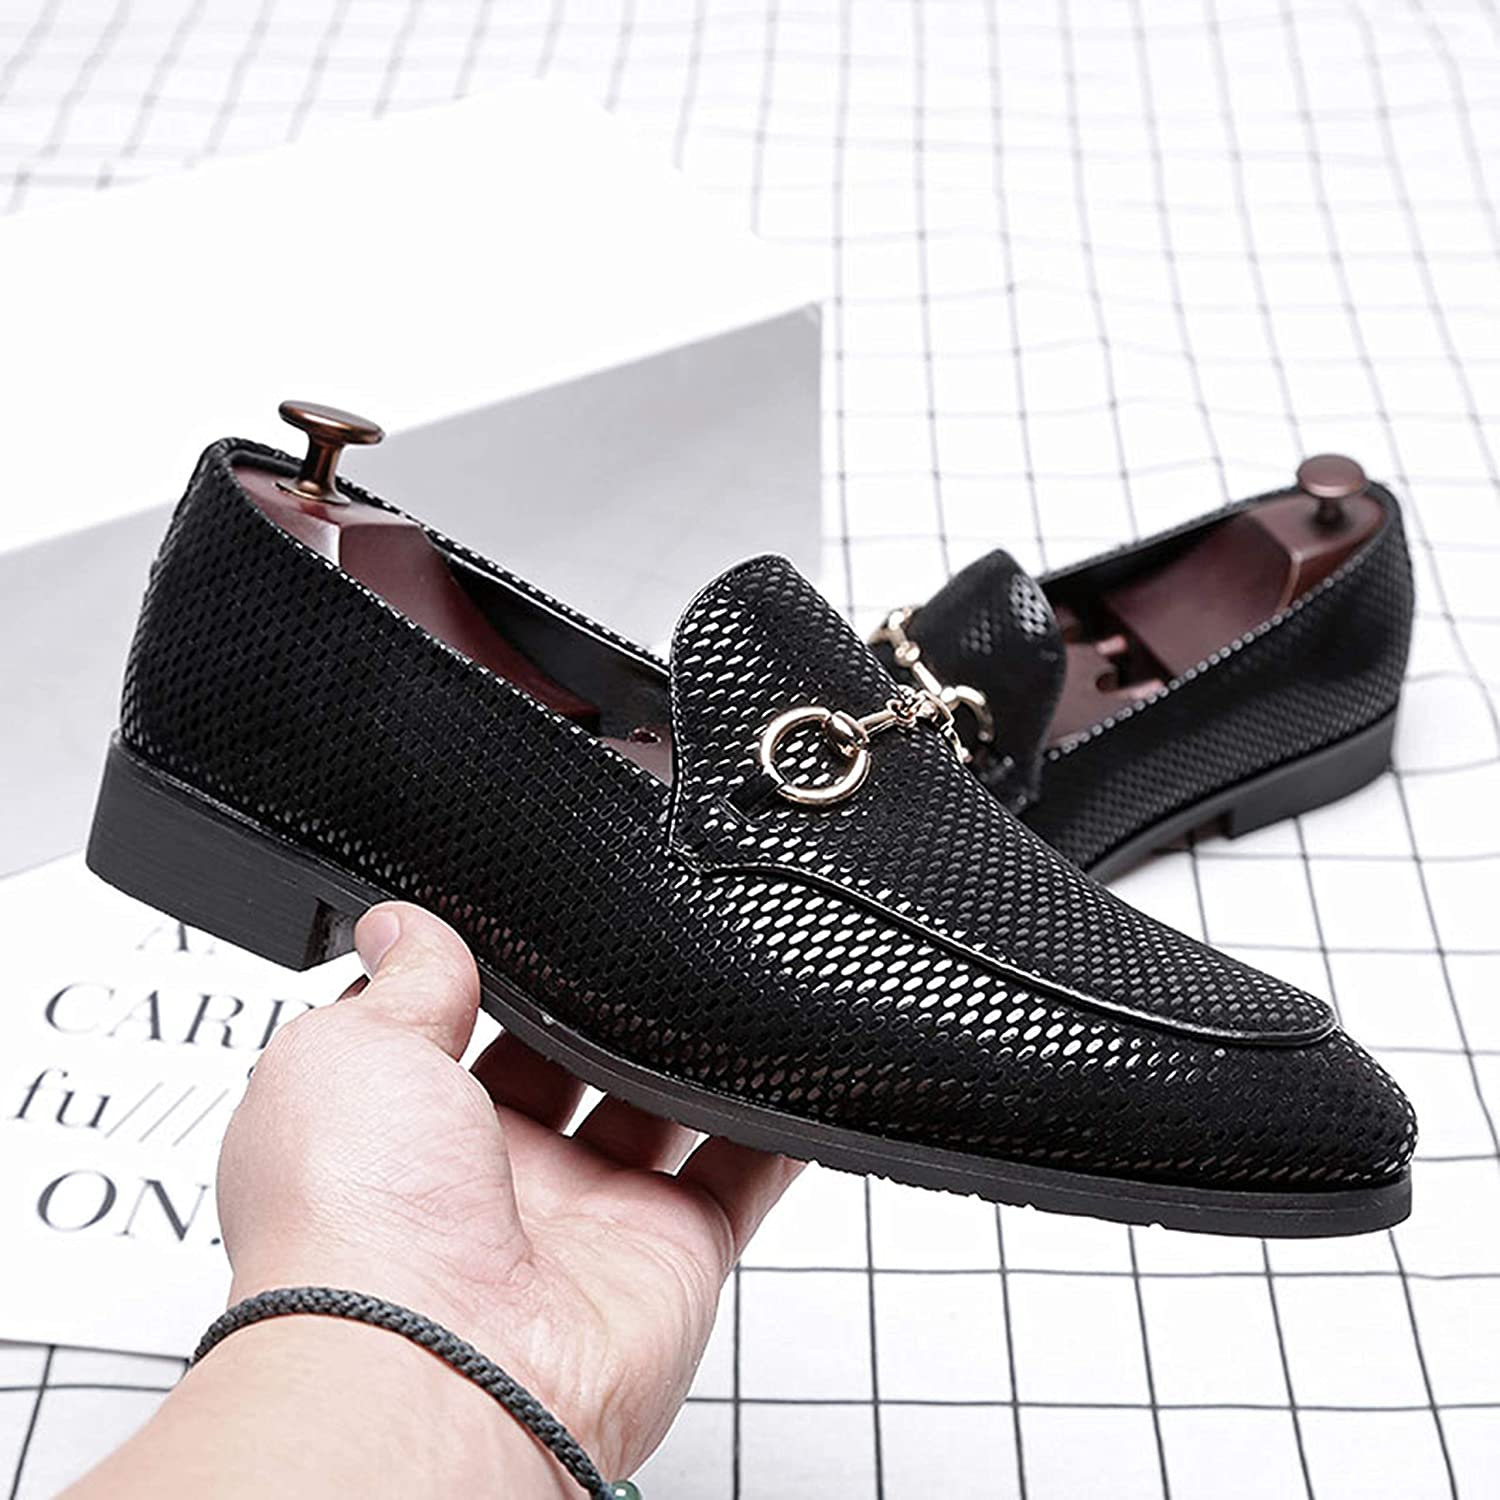 LEOED Men Loafer Metallic Smoking Slipper Pointed Toe Low Heel Leather Wedding Party Shoes Glossy Dress Shoes Size 6-11